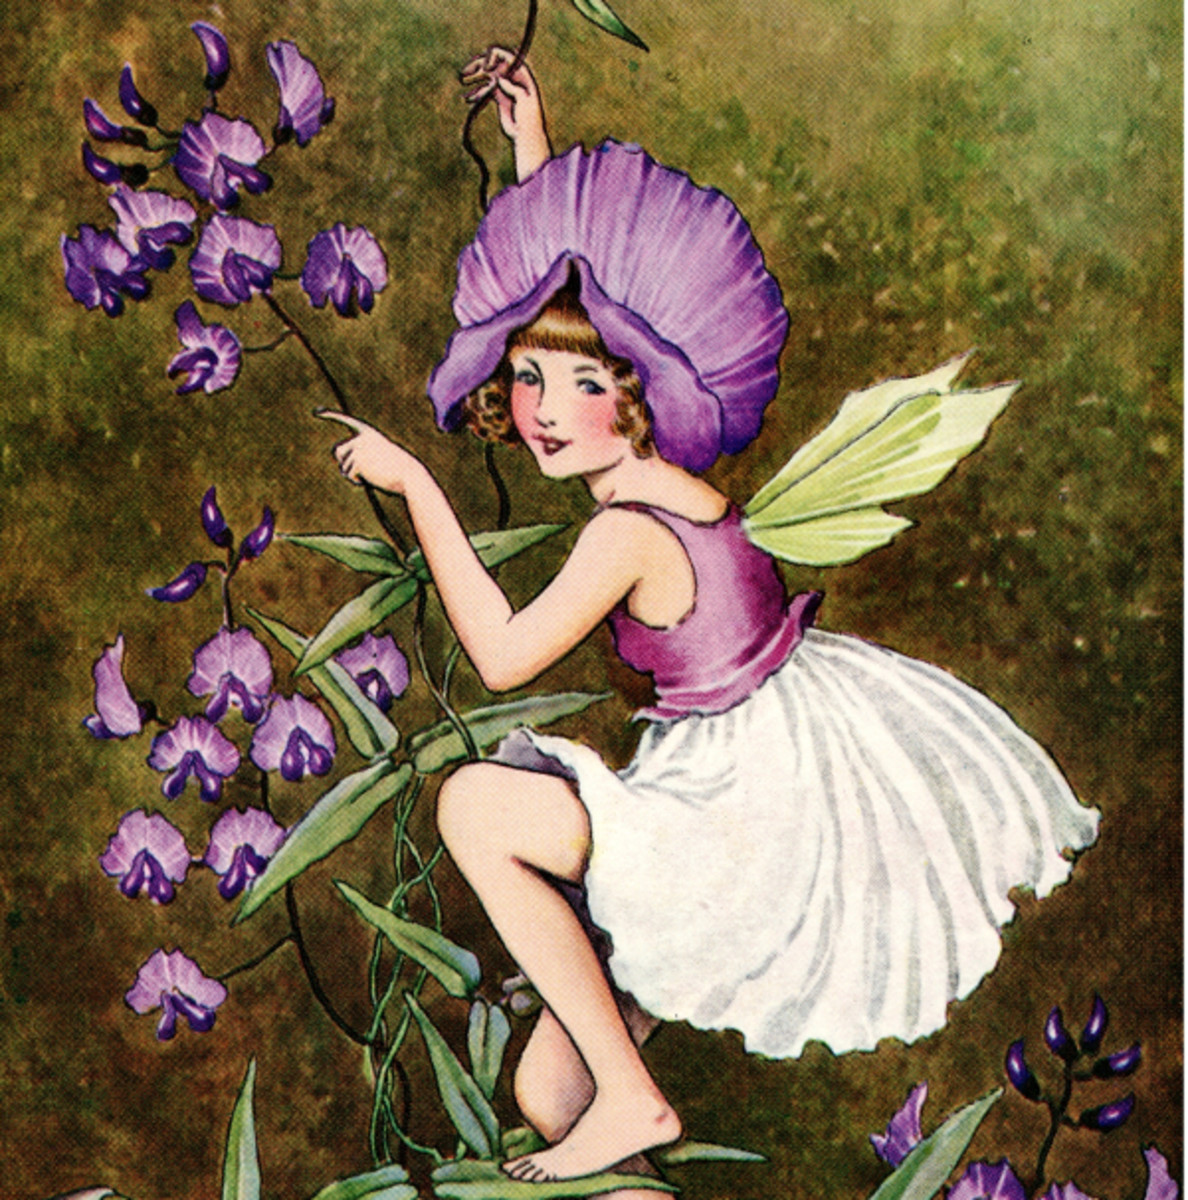 """Here we show a portion of """"Sarsaparilla"""" - it is from Ida Rentoul Outhwaite's suite published in """"A Bunch of Wild Flowers"""" (1933)."""